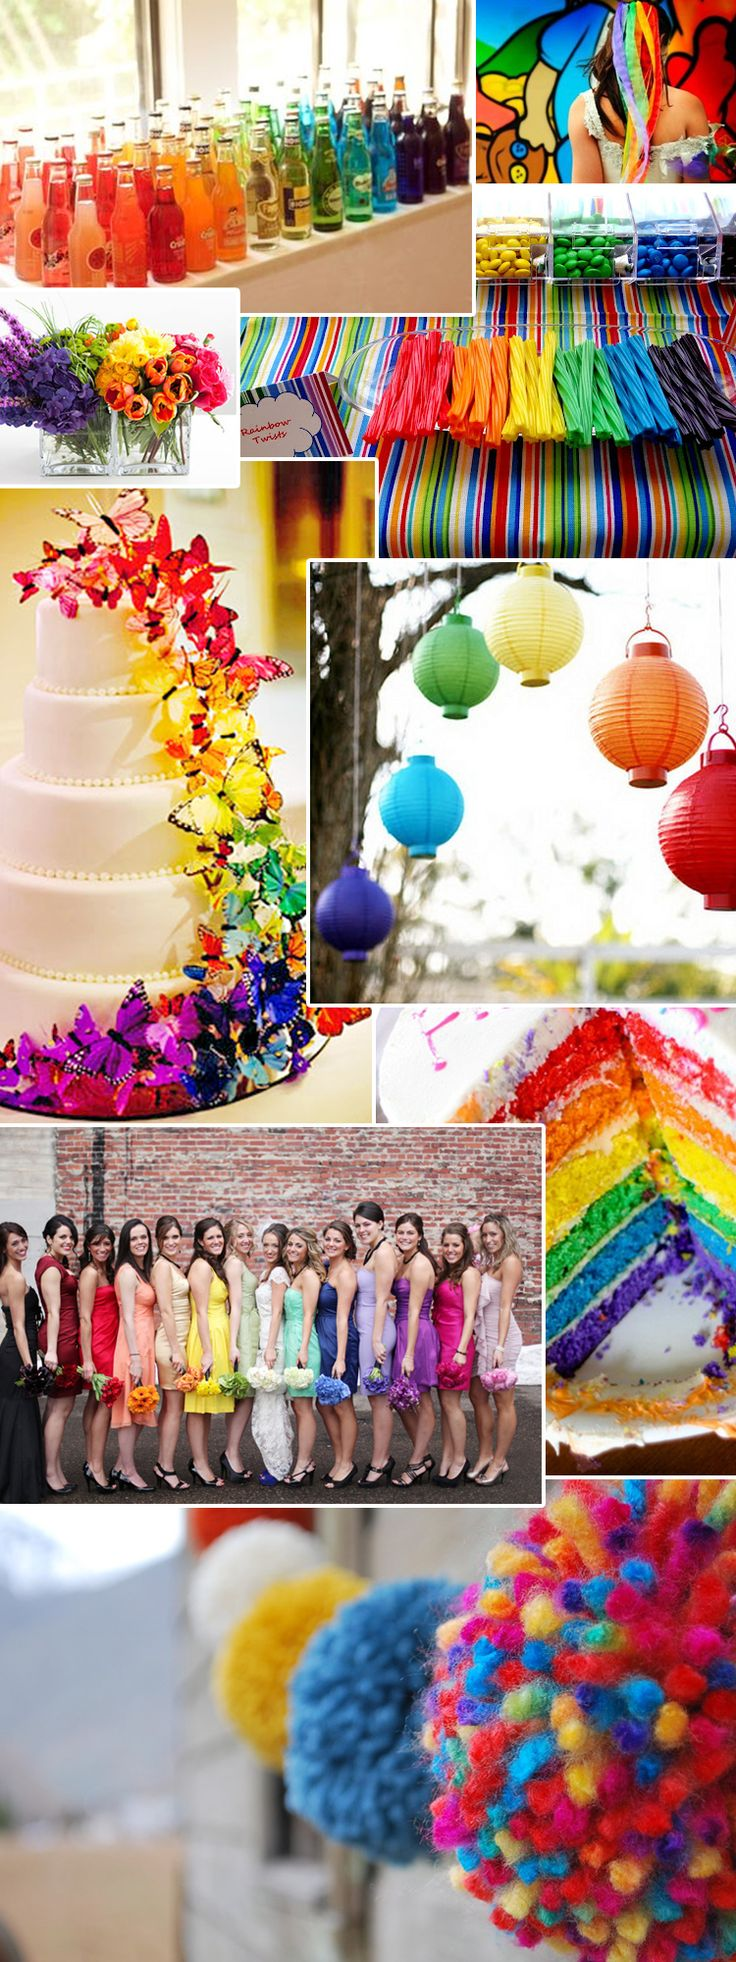 multicolored event decor...what do you think of this trend?